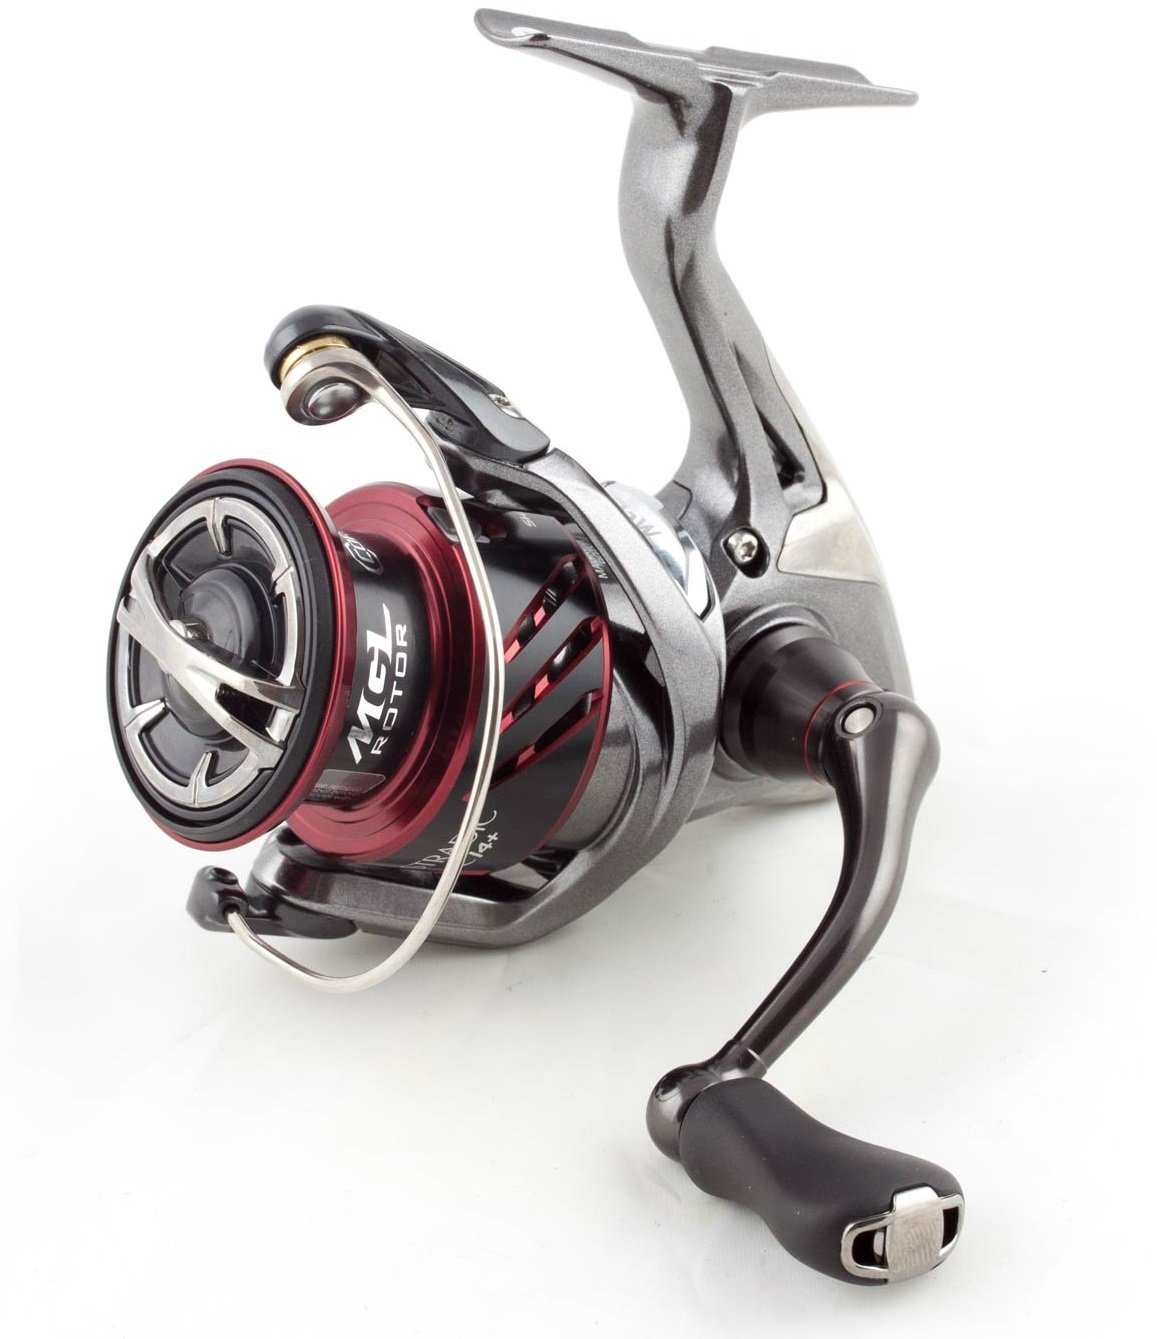 Shimano Stradic Ci4+ 1000 FB Spinning Fishing Reel With Front Drag, STCI41000FB